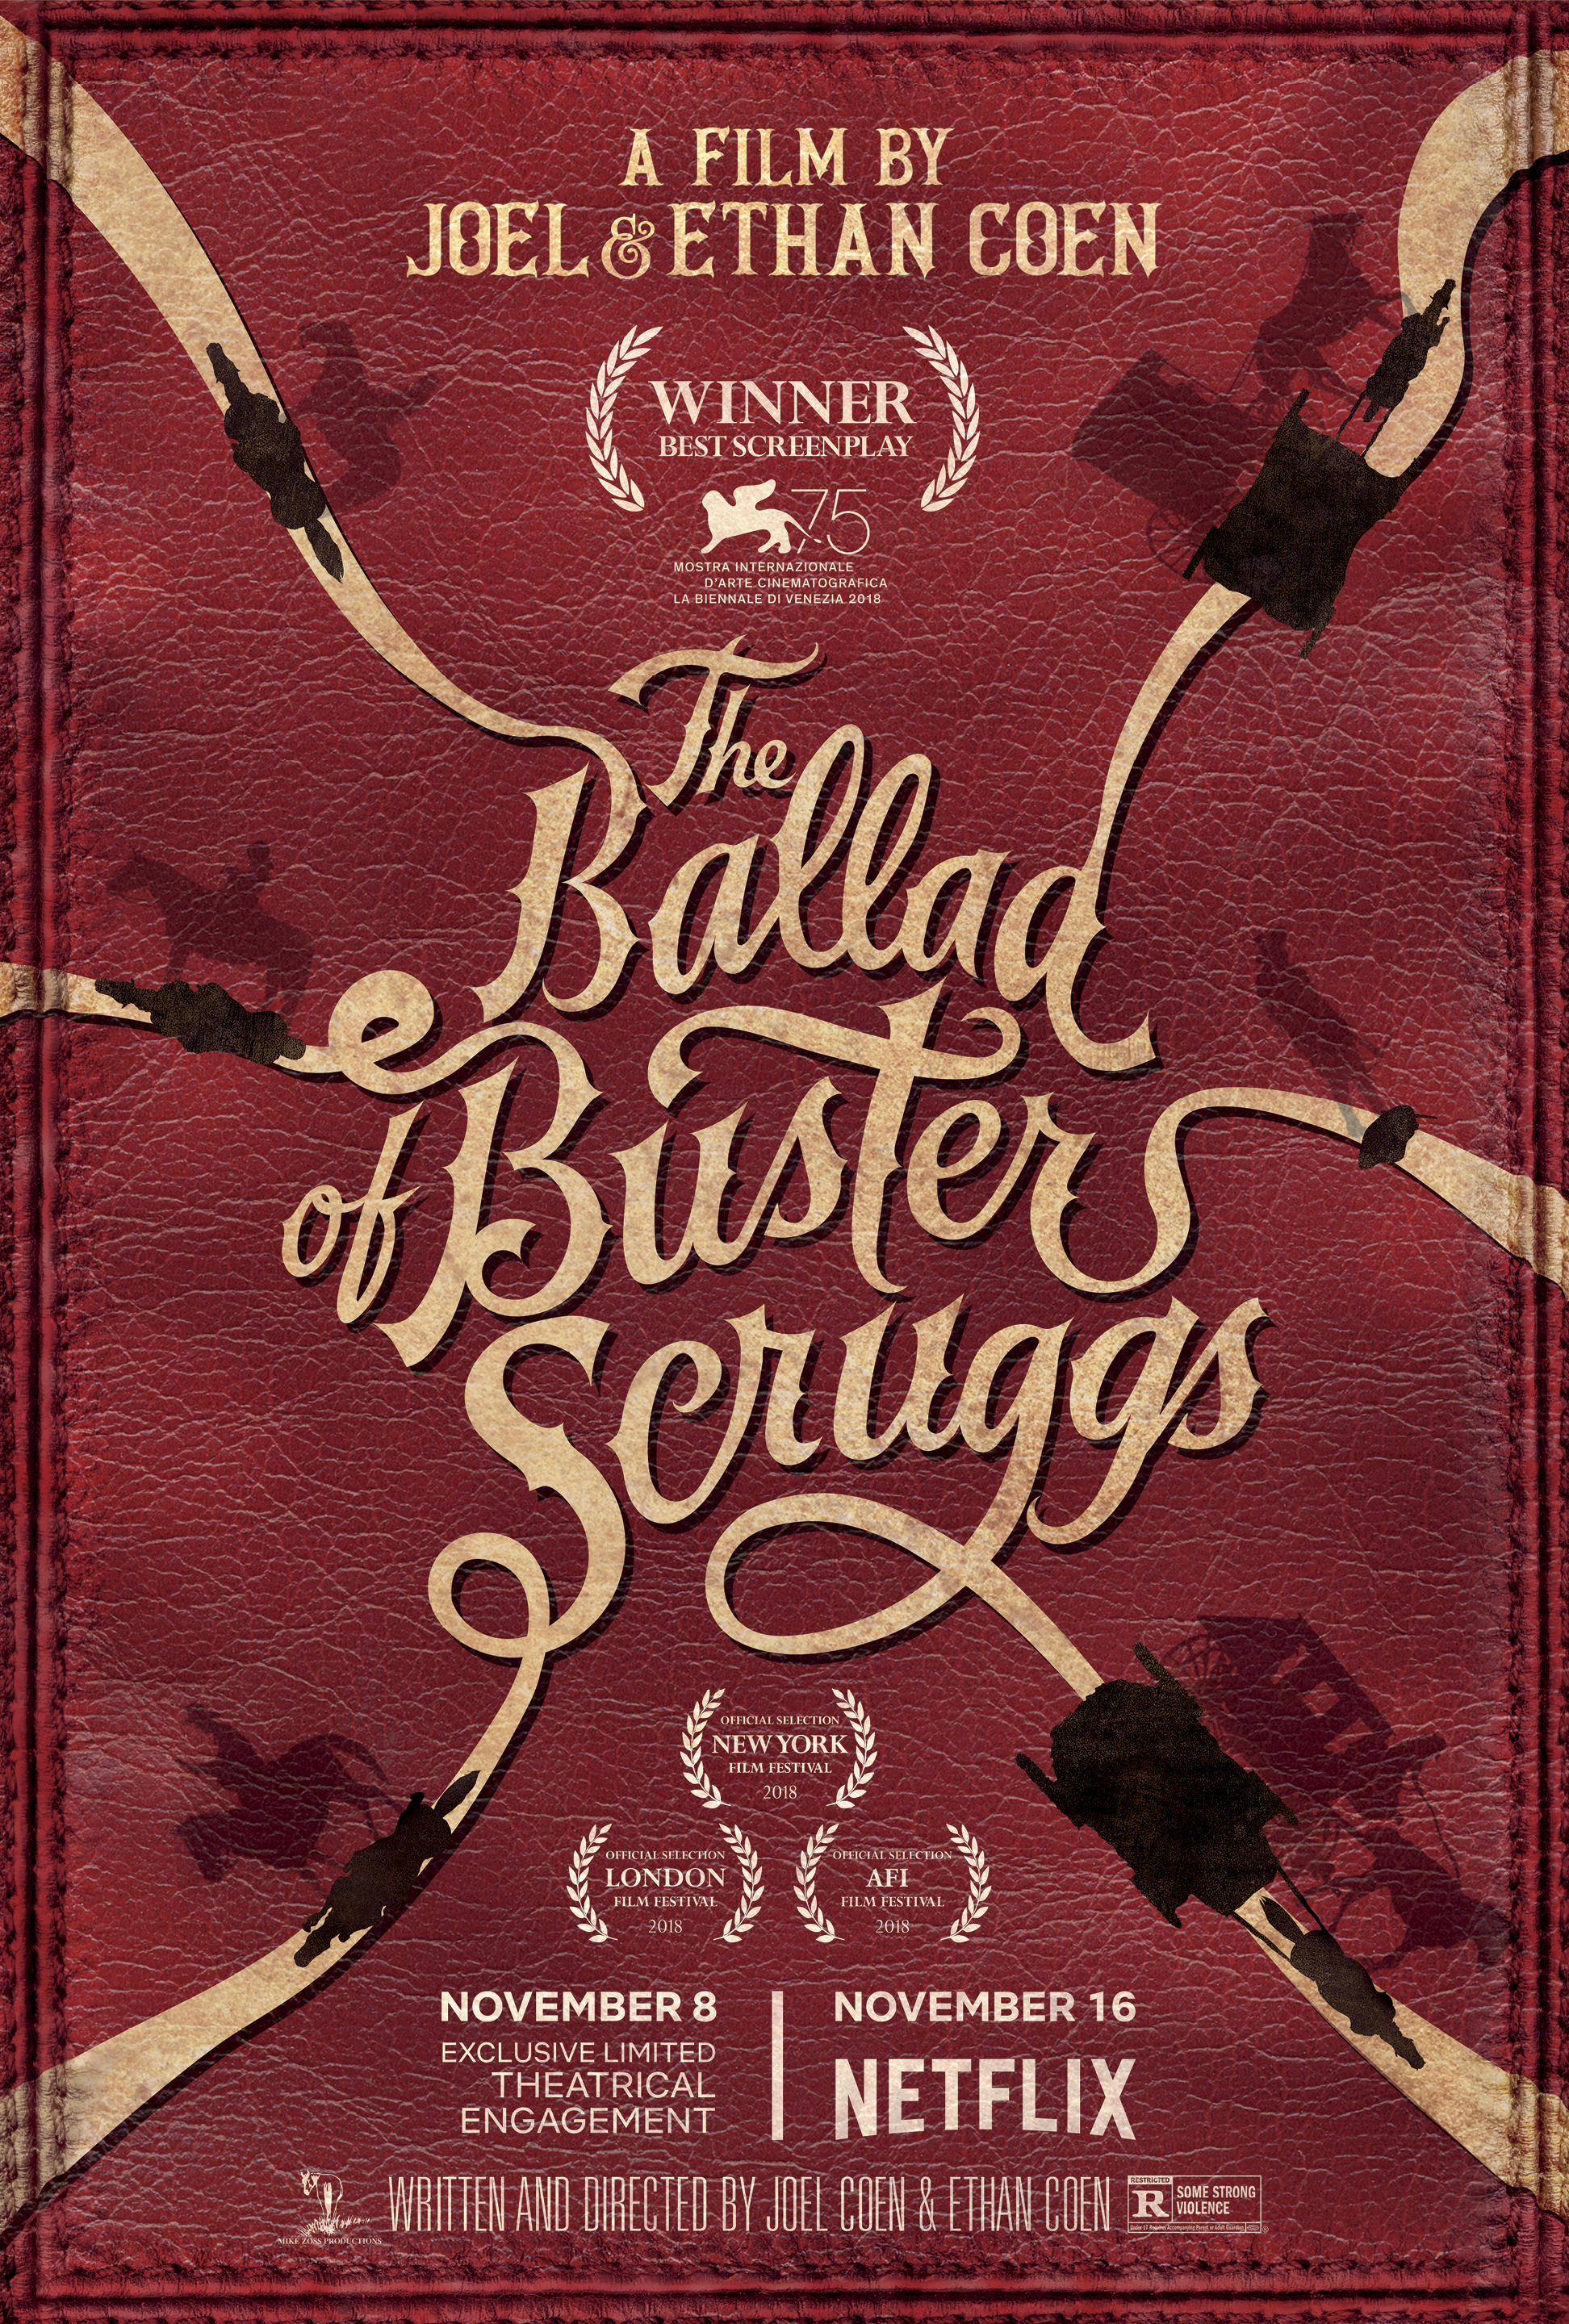 Image result for ballad of buster scruggs movie poster